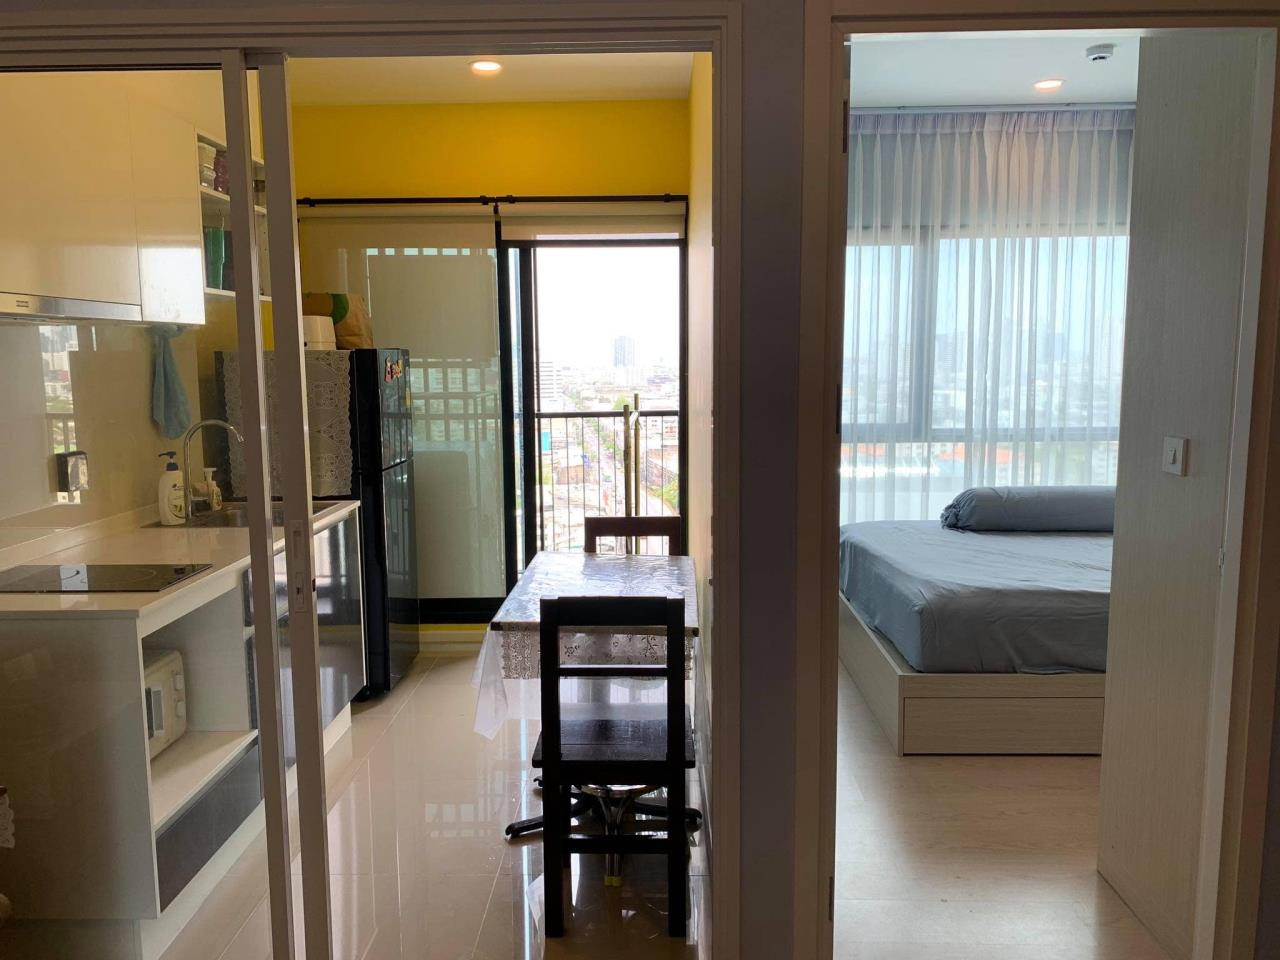 Blueocean property Agency's Condo For Rent – The Tree Sukhumvit 71 ( CODE : 20-06-0027-37 ) 10